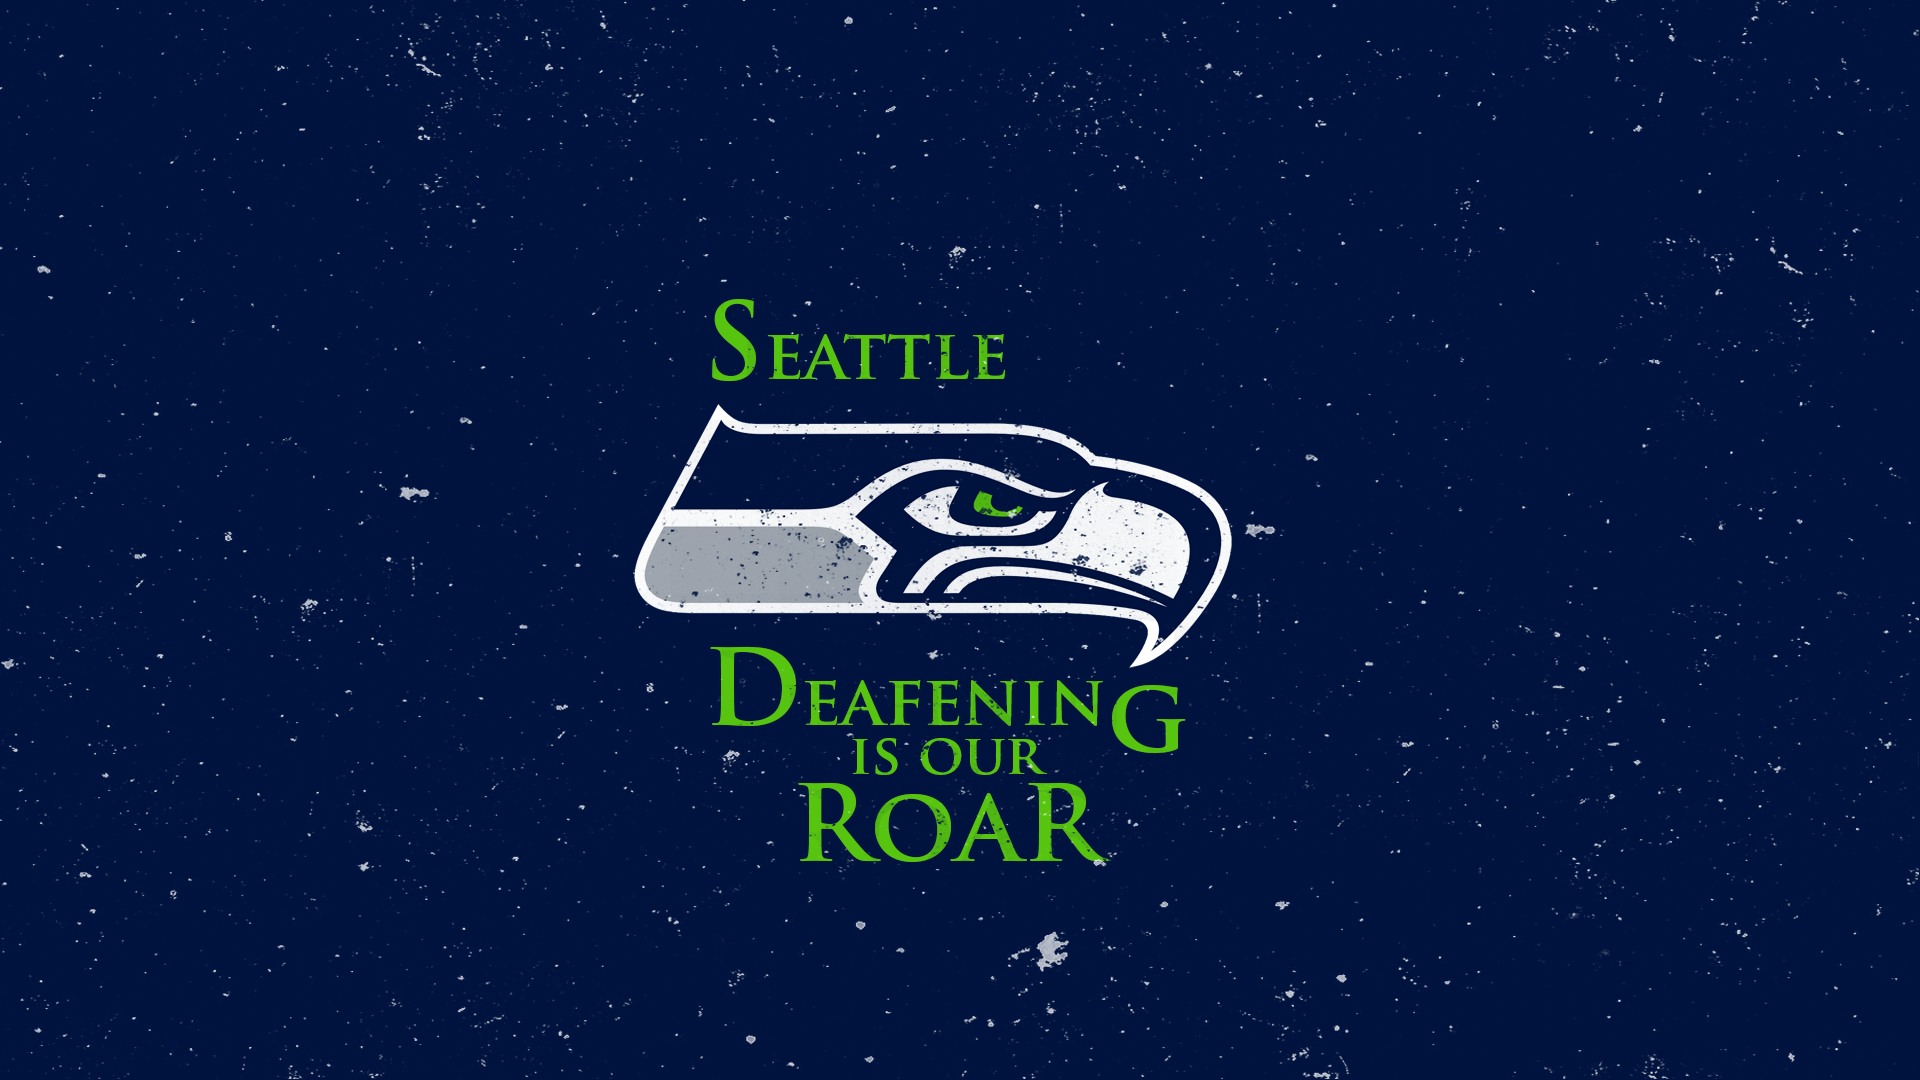 Nfl Seahawks Wallpaper Posted By Christopher Simpson